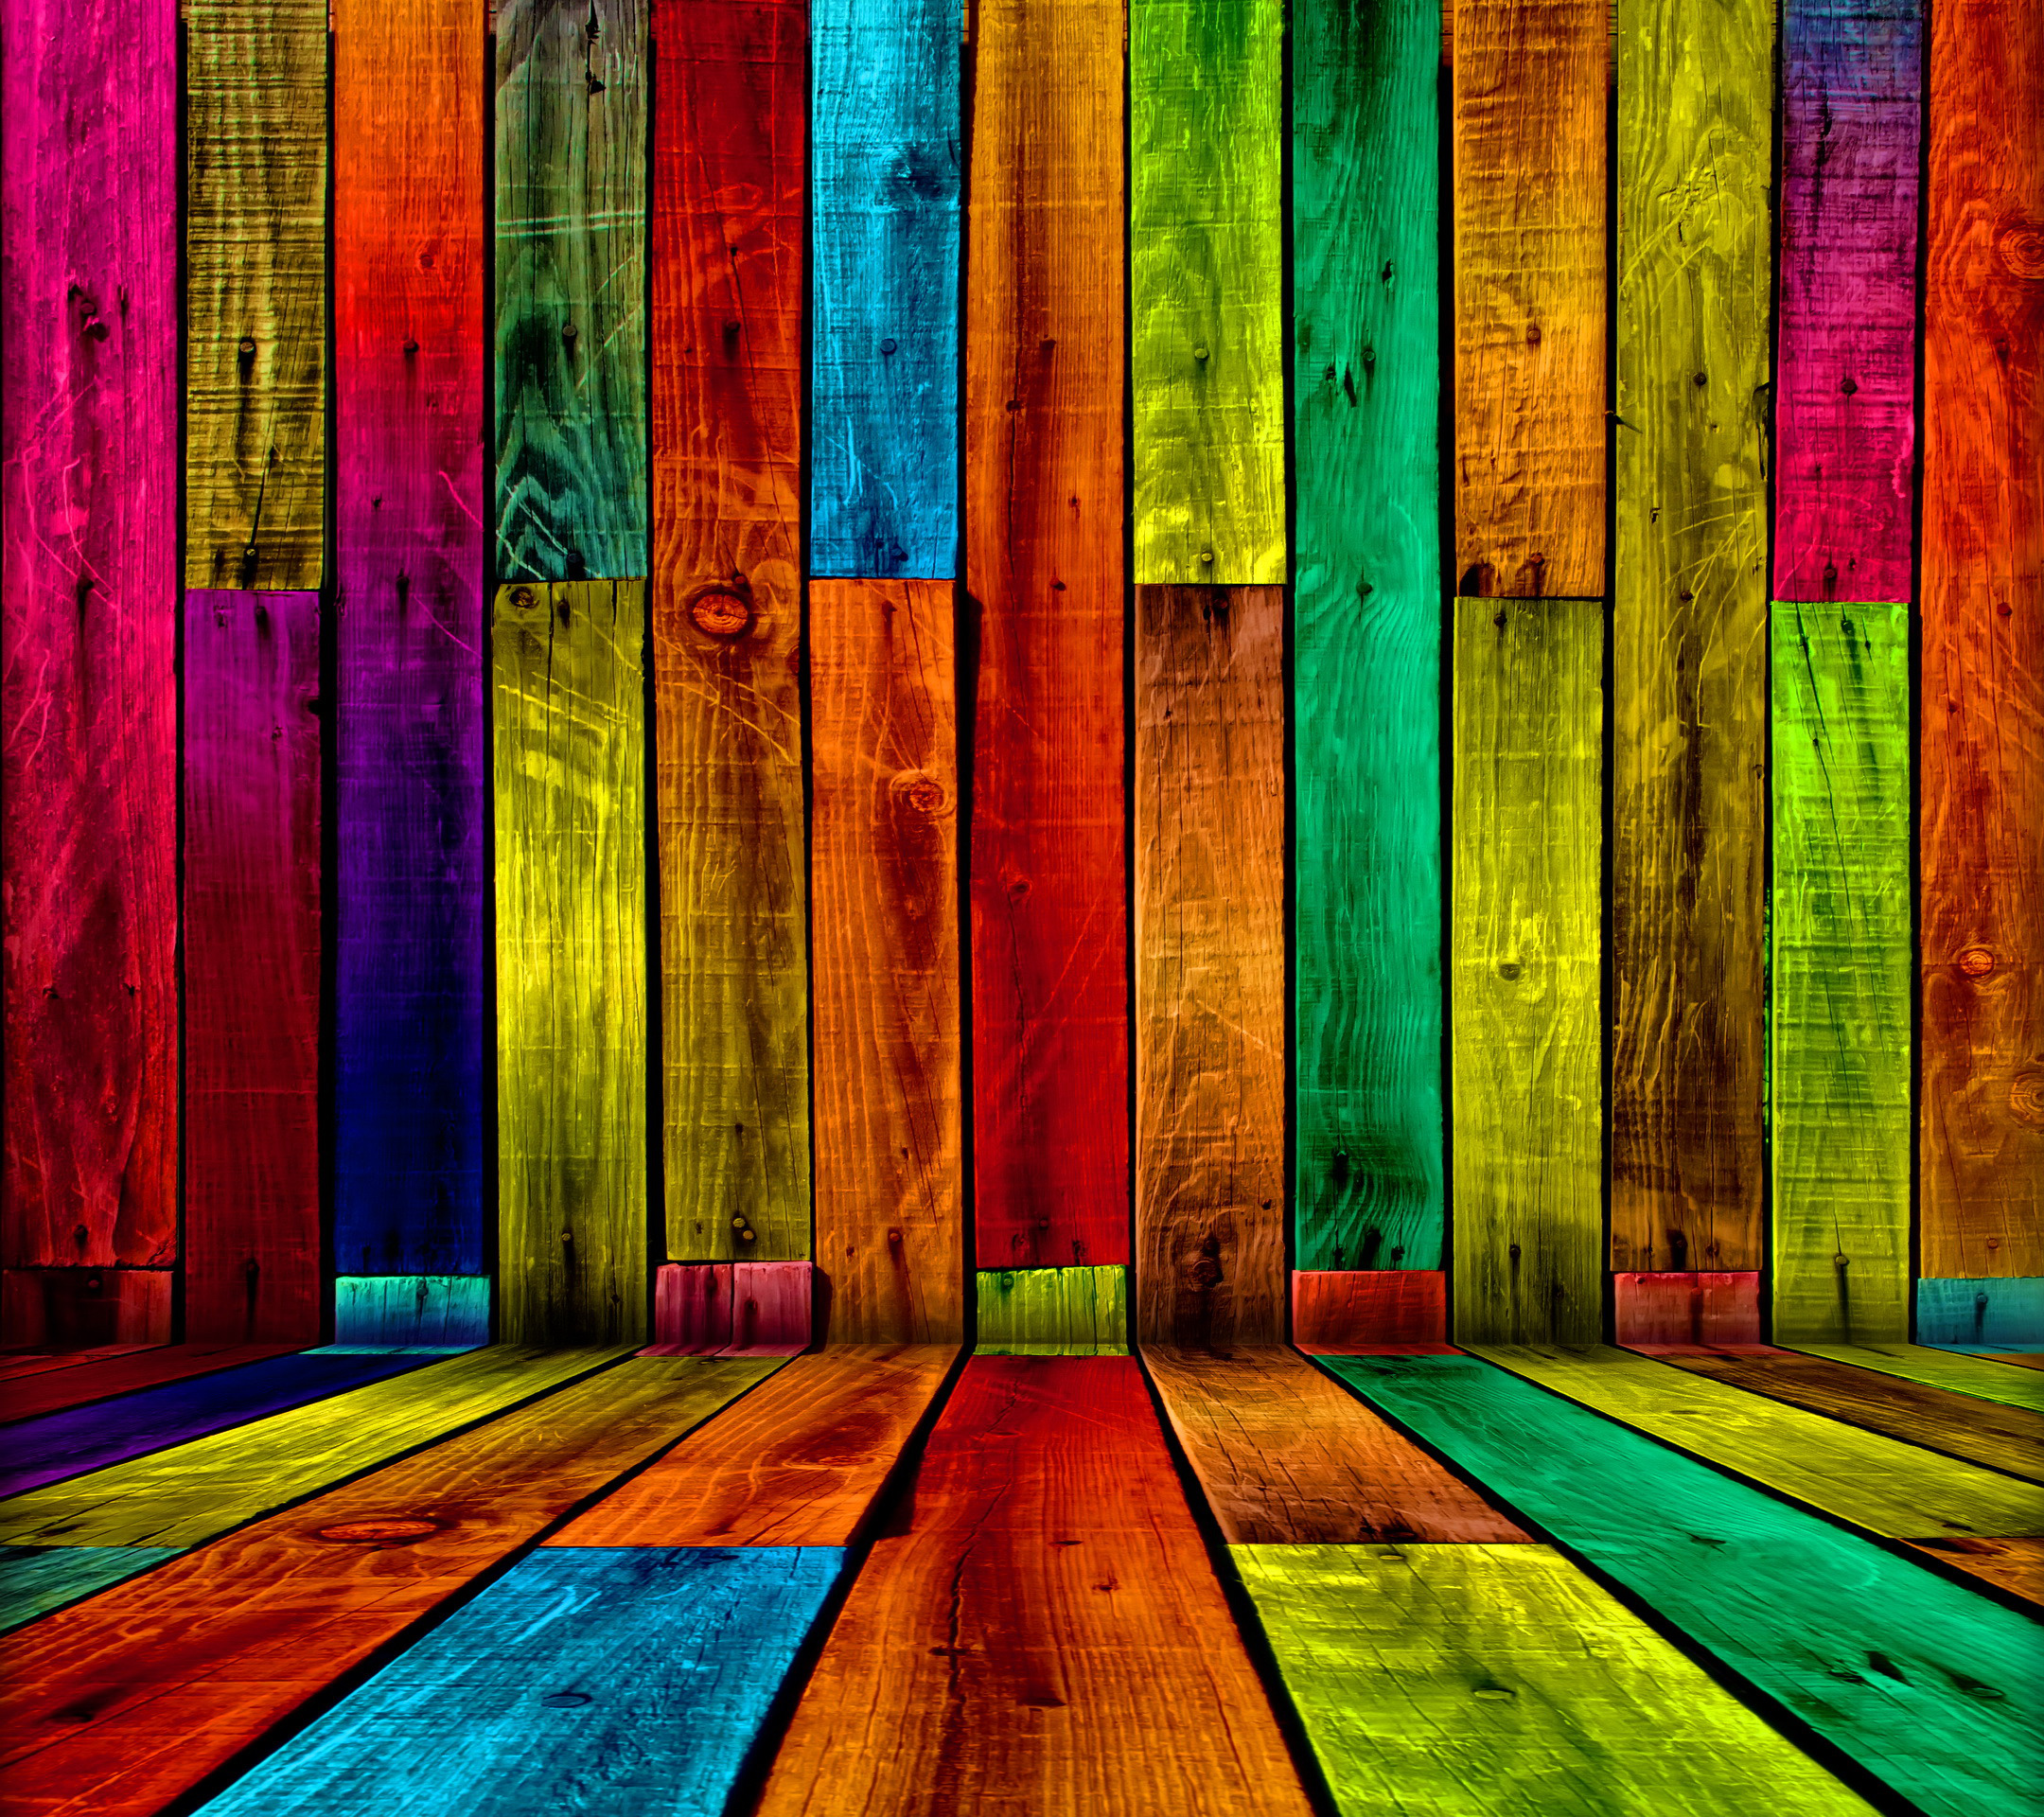 Abstract Colorful Best HD Wallpapers 16261 Wallpaper 2160x1920